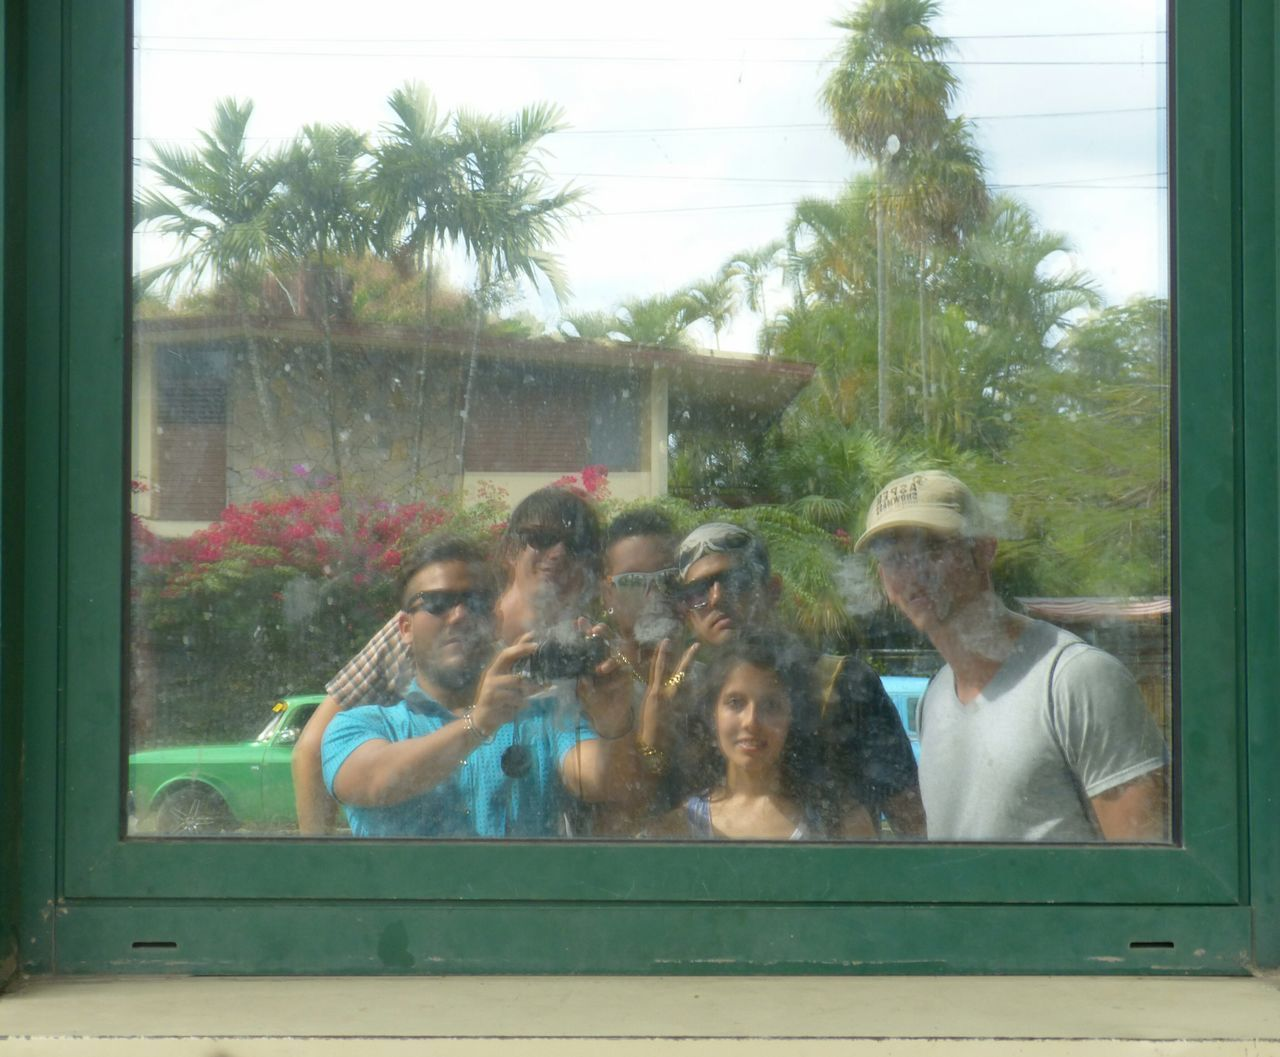 tree, day, leisure activity, window, togetherness, real people, lifestyles, enjoyment, men, motion, standing, outdoors, palm tree, happiness, group of people, boys, large group of people, women, nature, friendship, young women, young adult, people, adult, sky